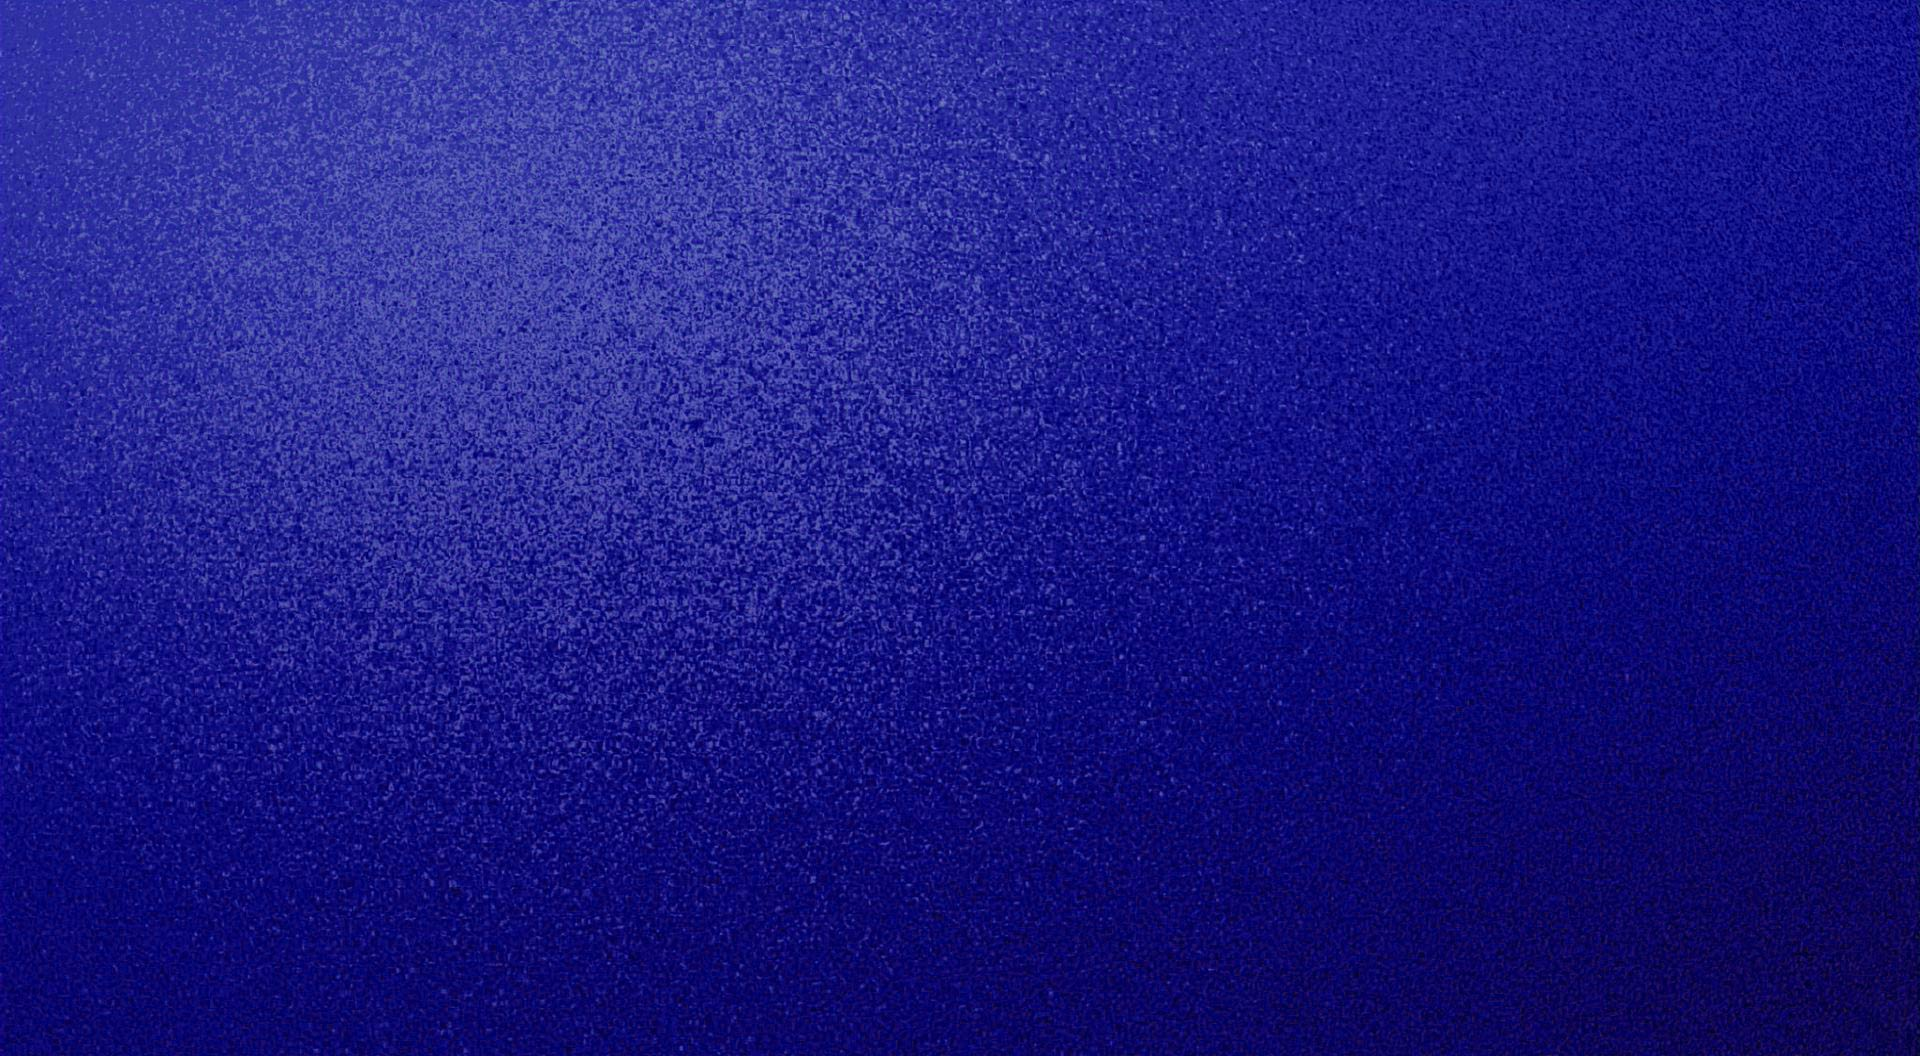 Dark Blue-Royal Blue Textured Background Desktop Wallpaper